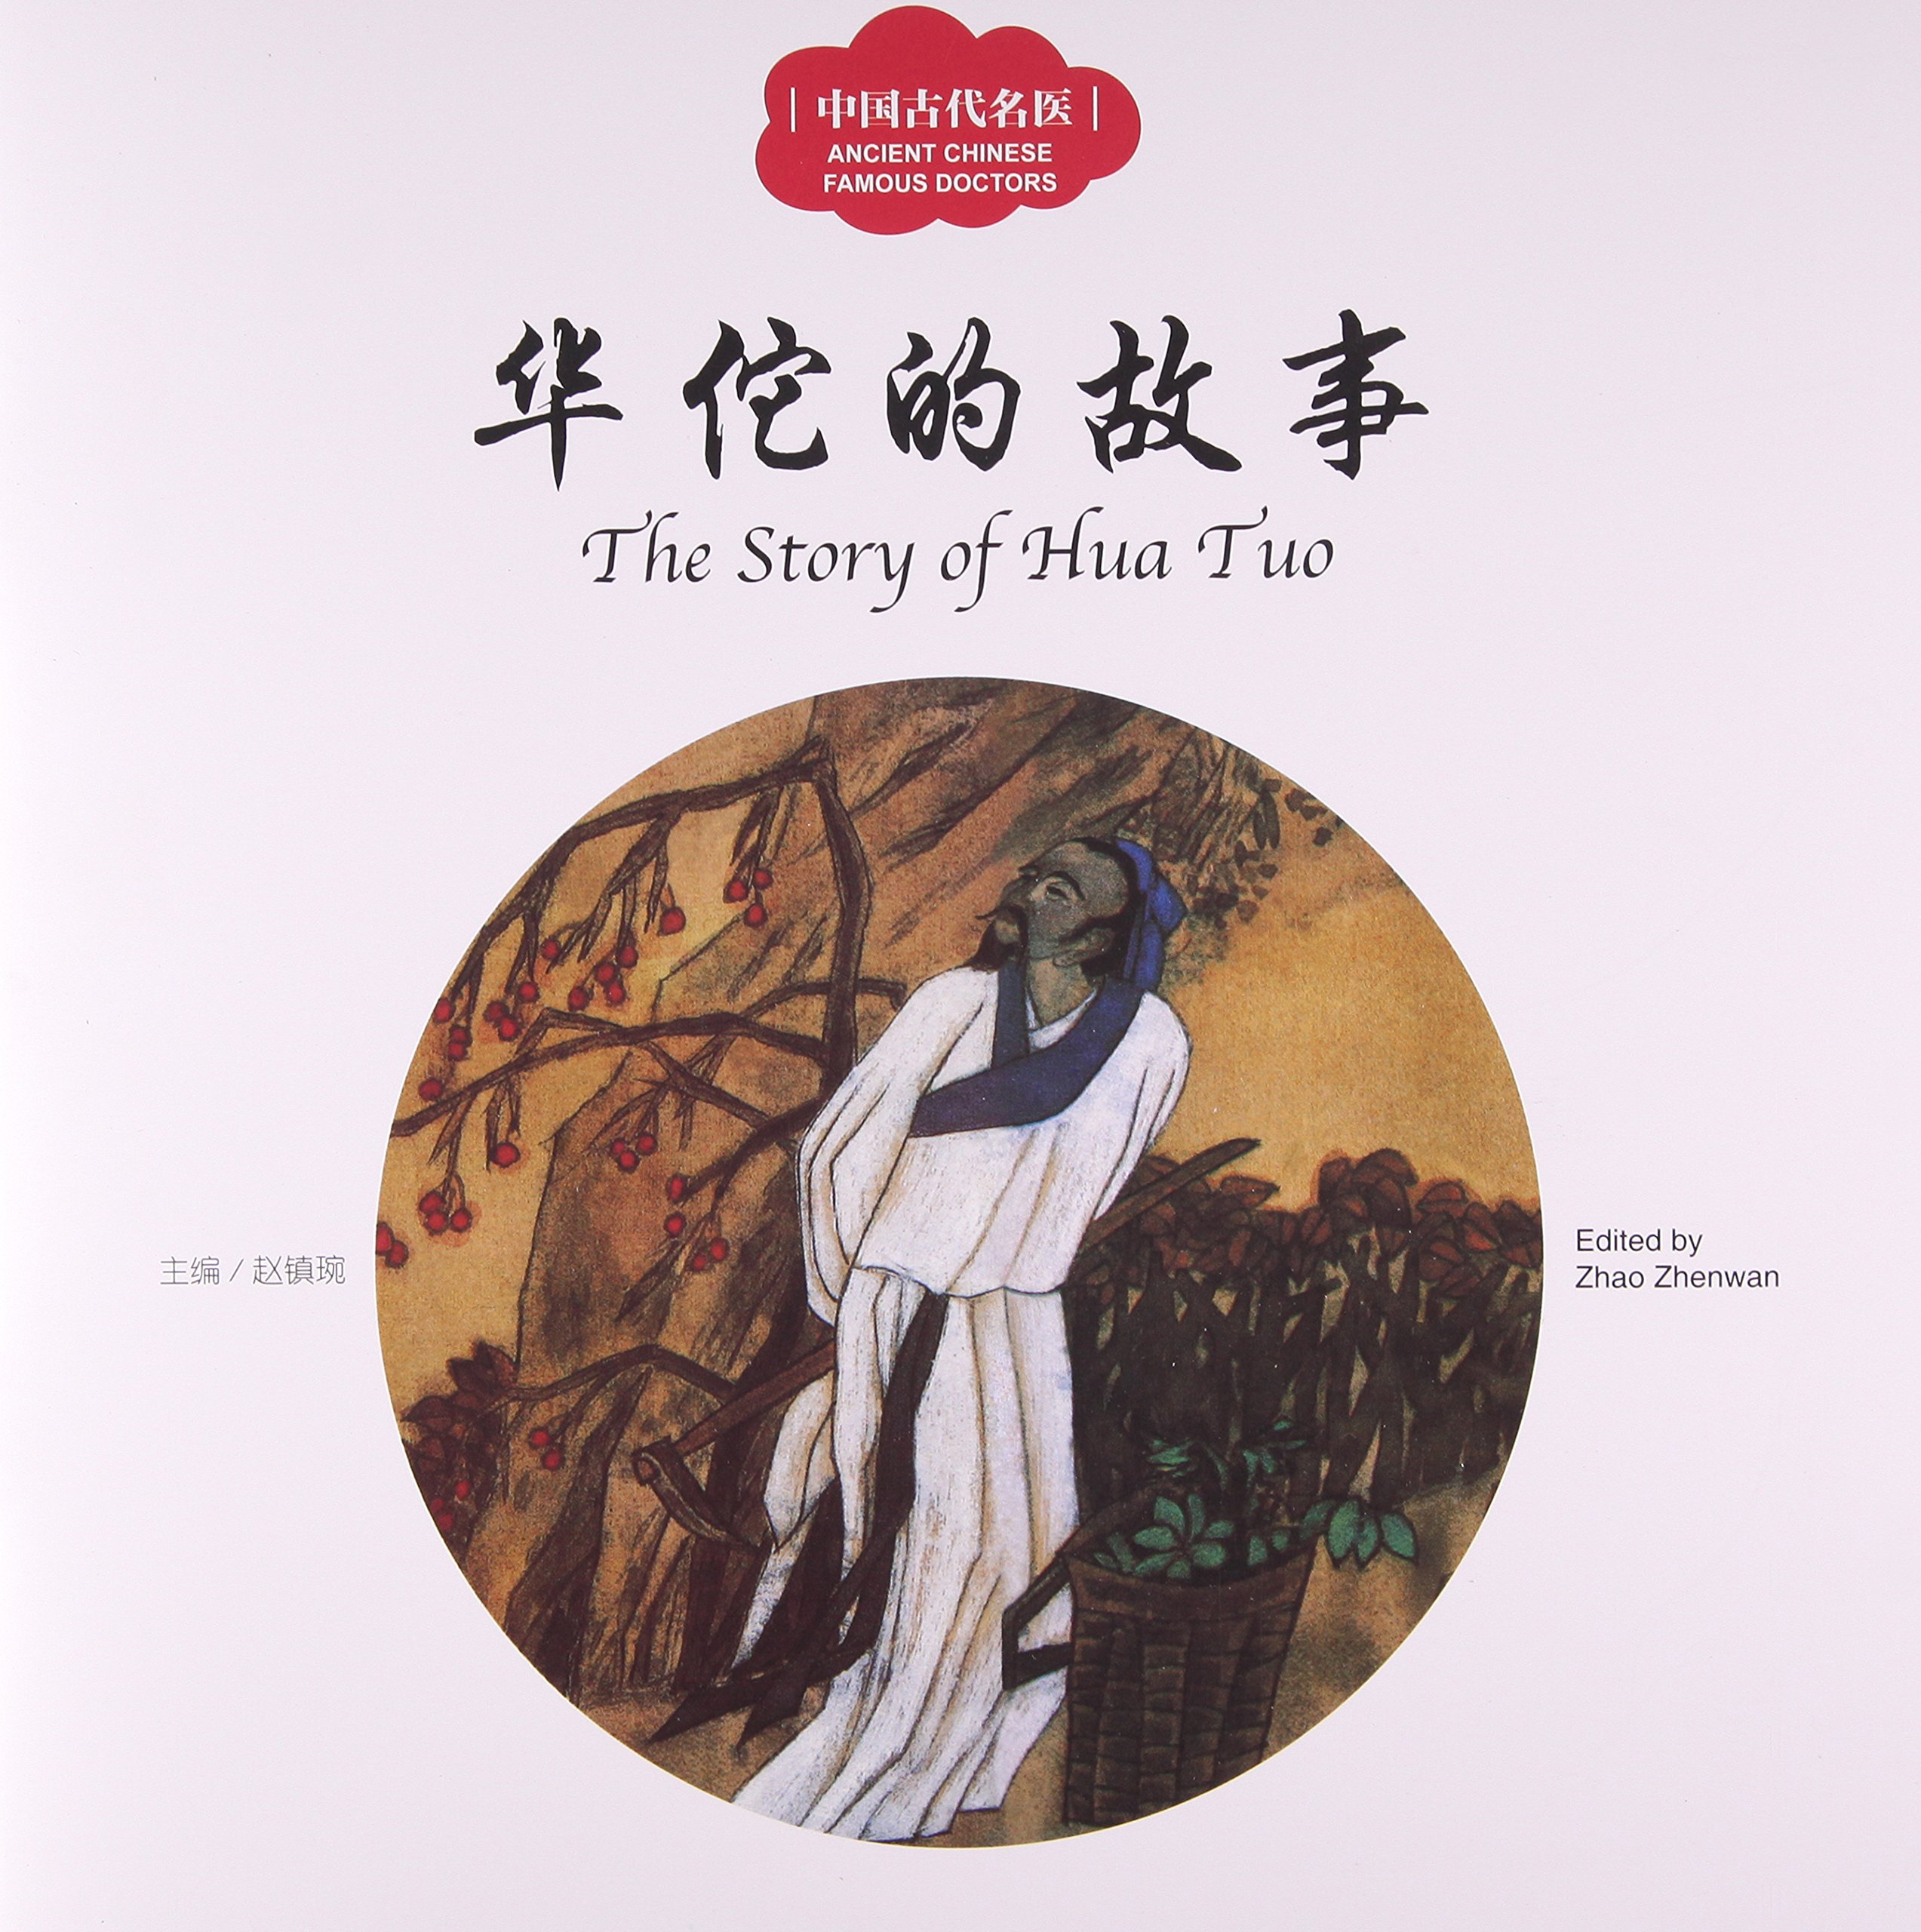 The Story of Hua Tuo - First Books for Early Learning Series